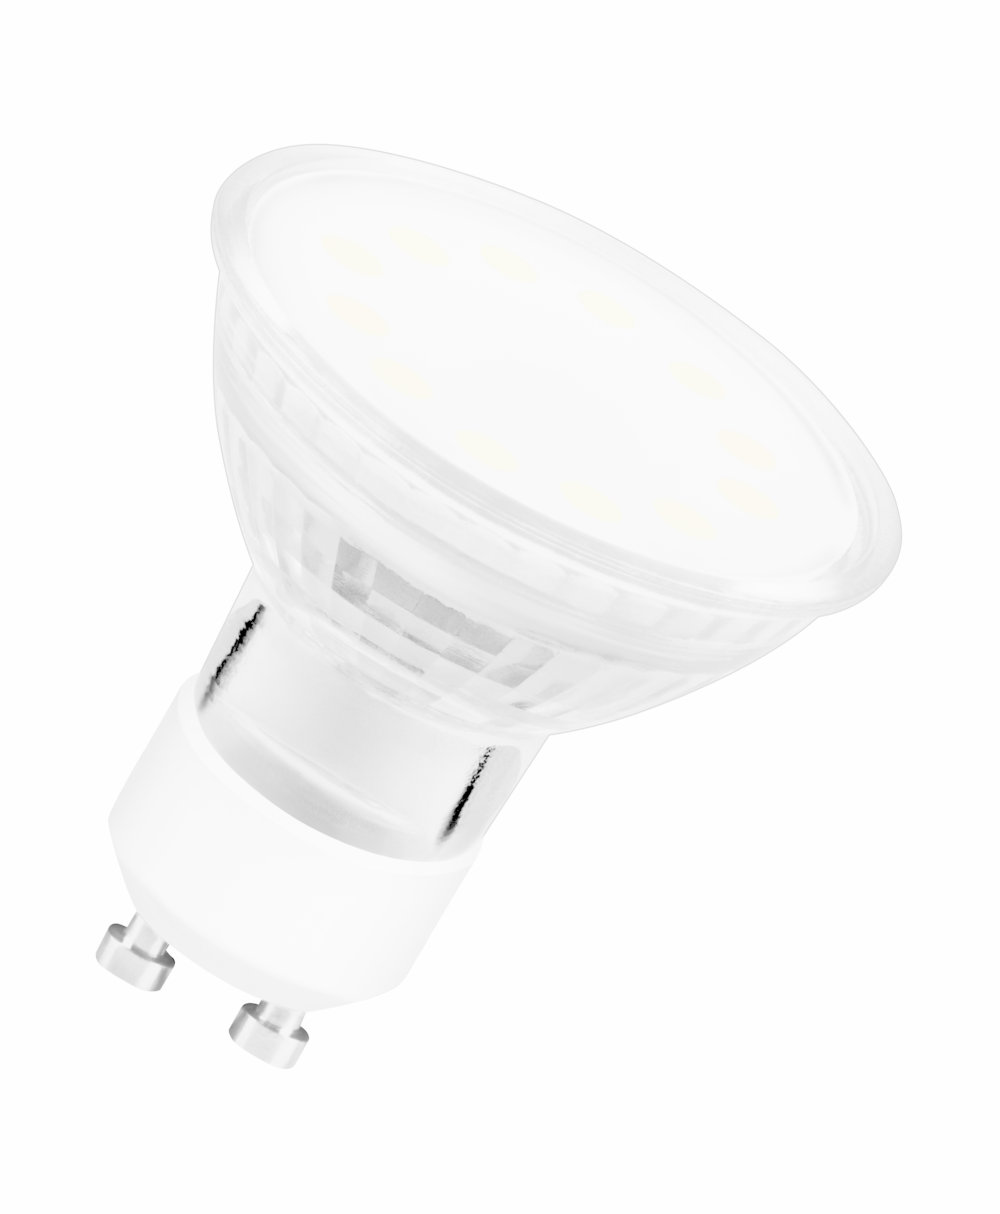 PAR16 35W für LED Downlight und LED SPOT